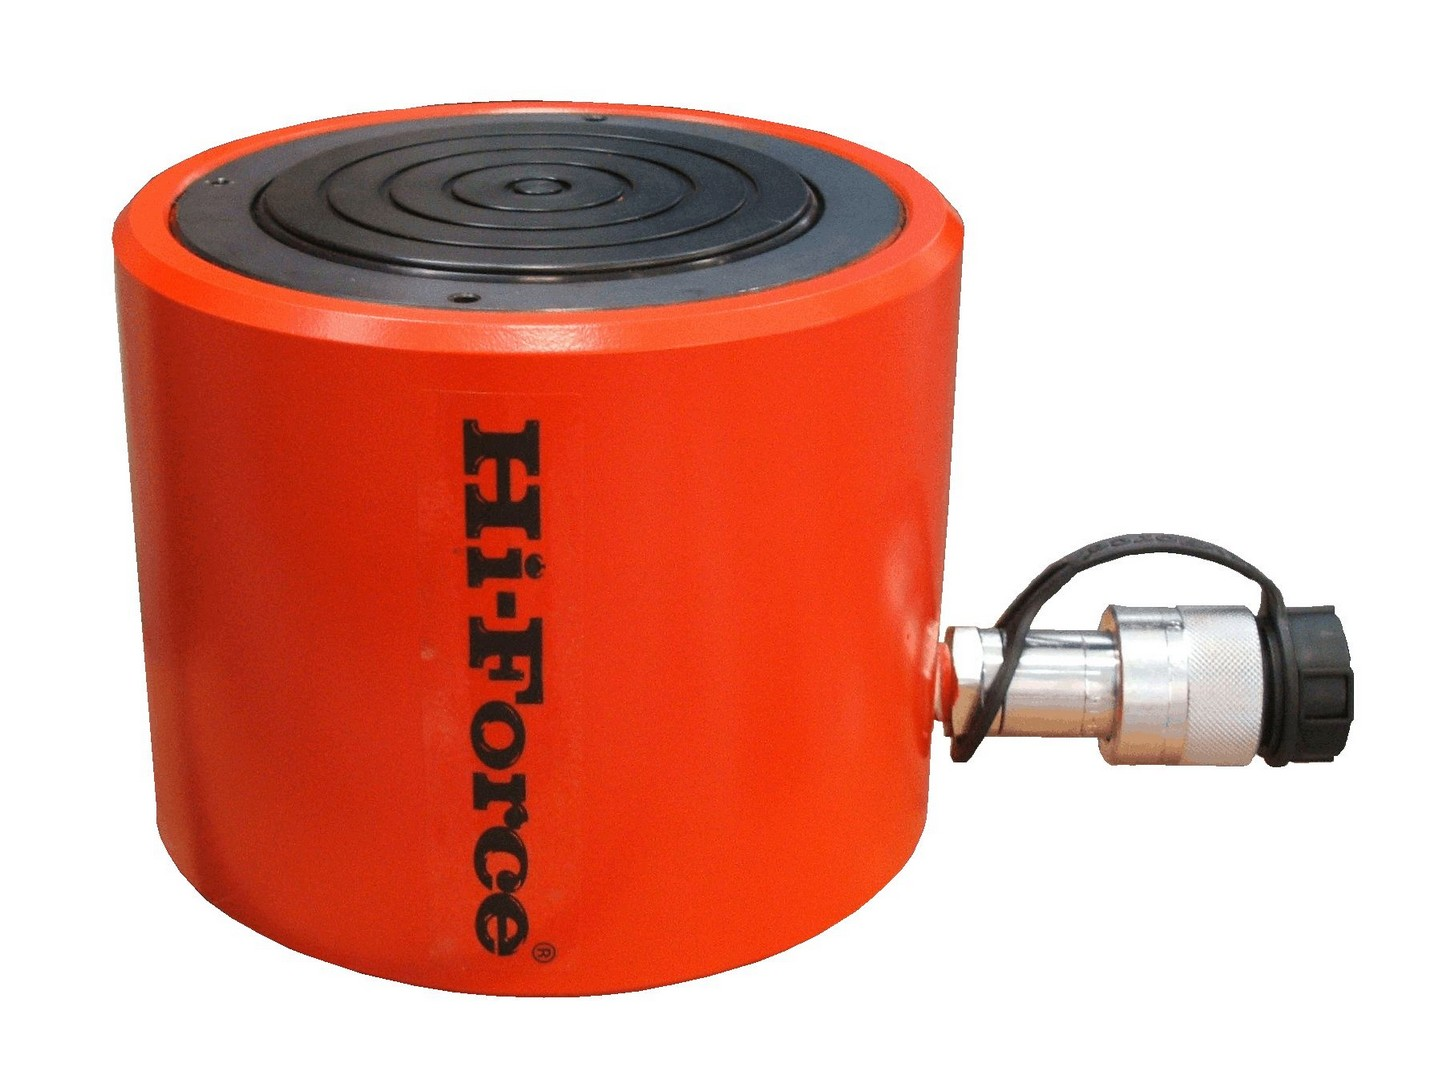 Multi-Purpose Lifting Cylinder - 50 Tonnes, 51mm Stroke